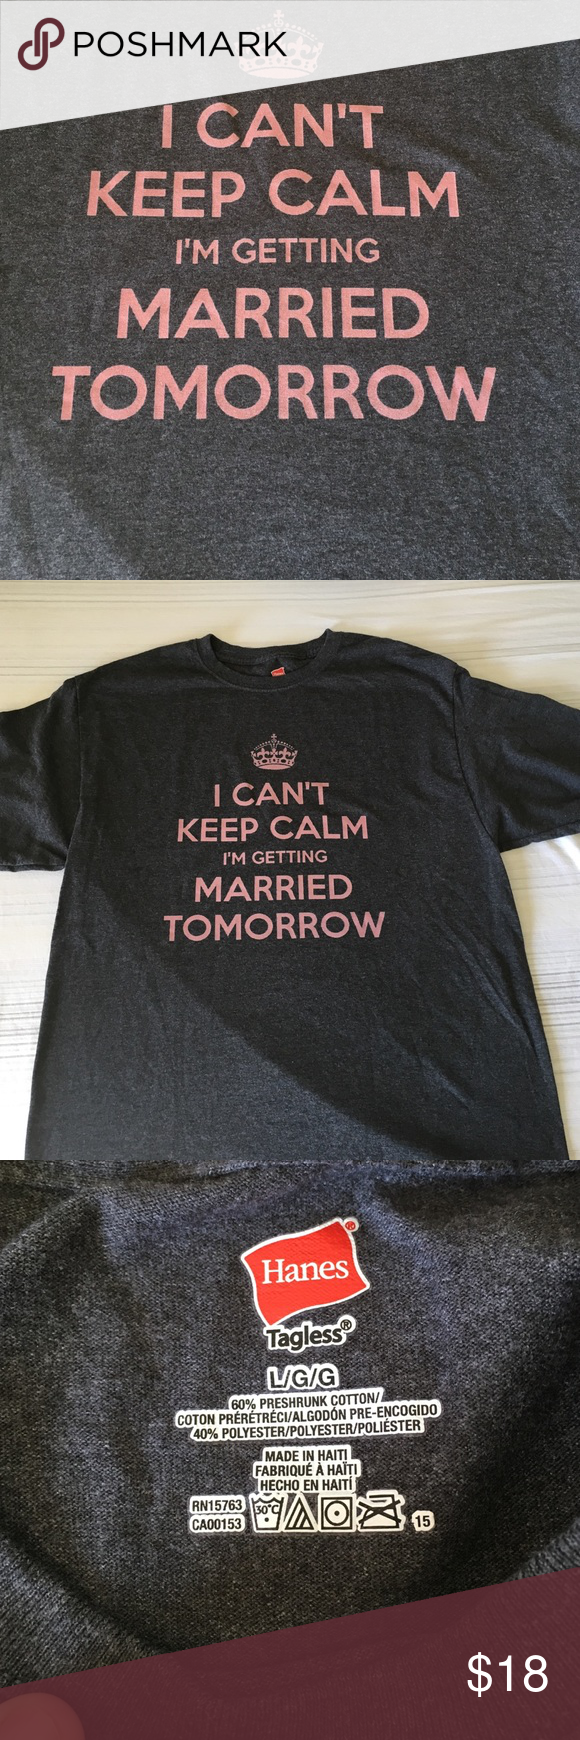 """Can't Keep Calm Tee A dark heather gray tee shirt with """"I can't keep calm I'm getting married tomorrow"""" phrase on it in a rose gold color. Hanes large unisex size shirt.  Worn once Tops Tees - Short Sleeve"""